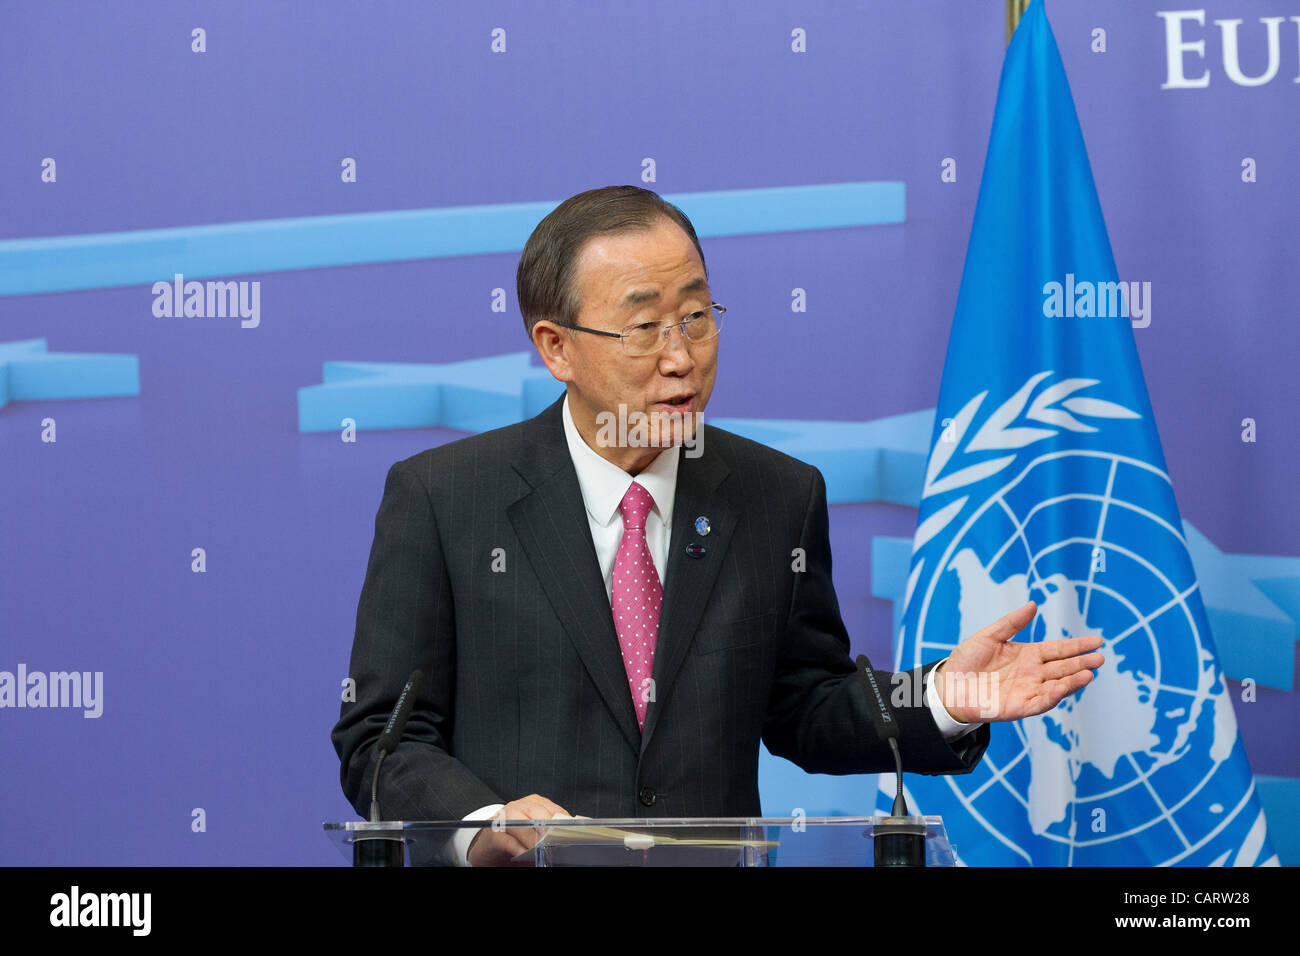 Secretary General of the United Nations Ban Ki-Moon speaking Stock Photo